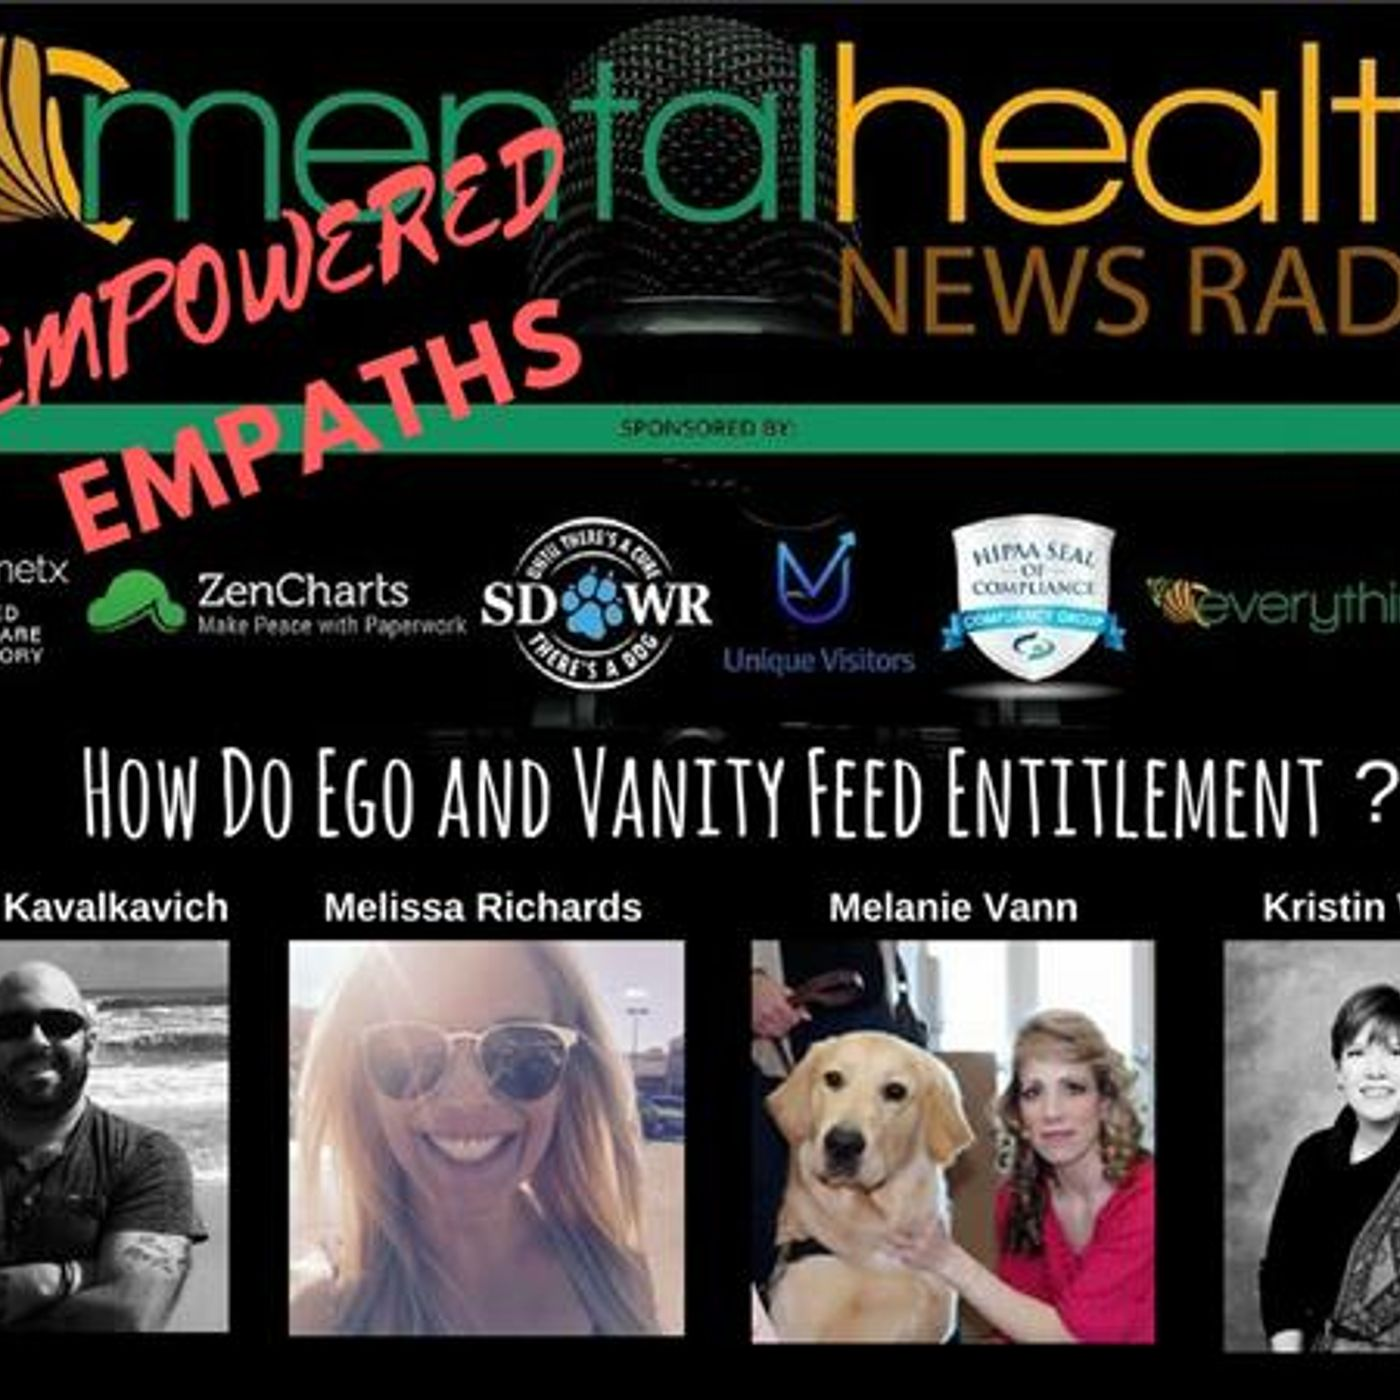 Mental Health News Radio - Empowered Empaths: How Do Ego and Vanity Feed Entitlement?